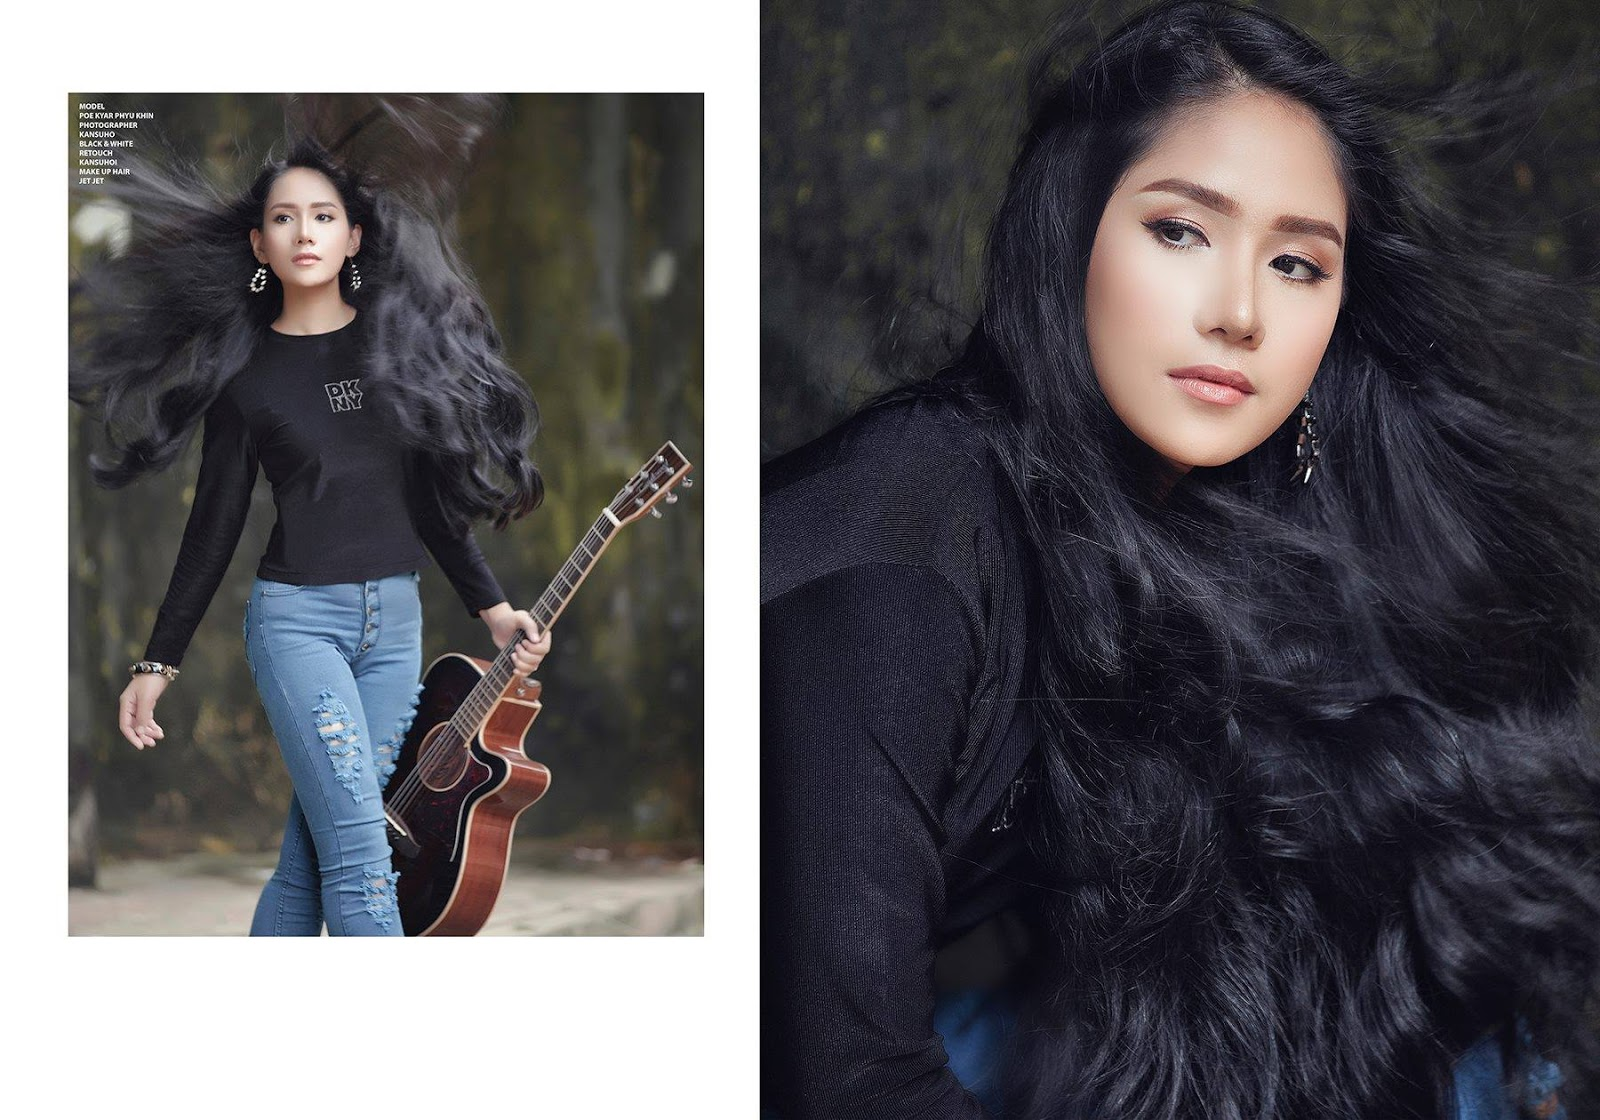 Poe Kyar Phyu Khin Fashion Photoshoot In Black Top and Blue Jeans